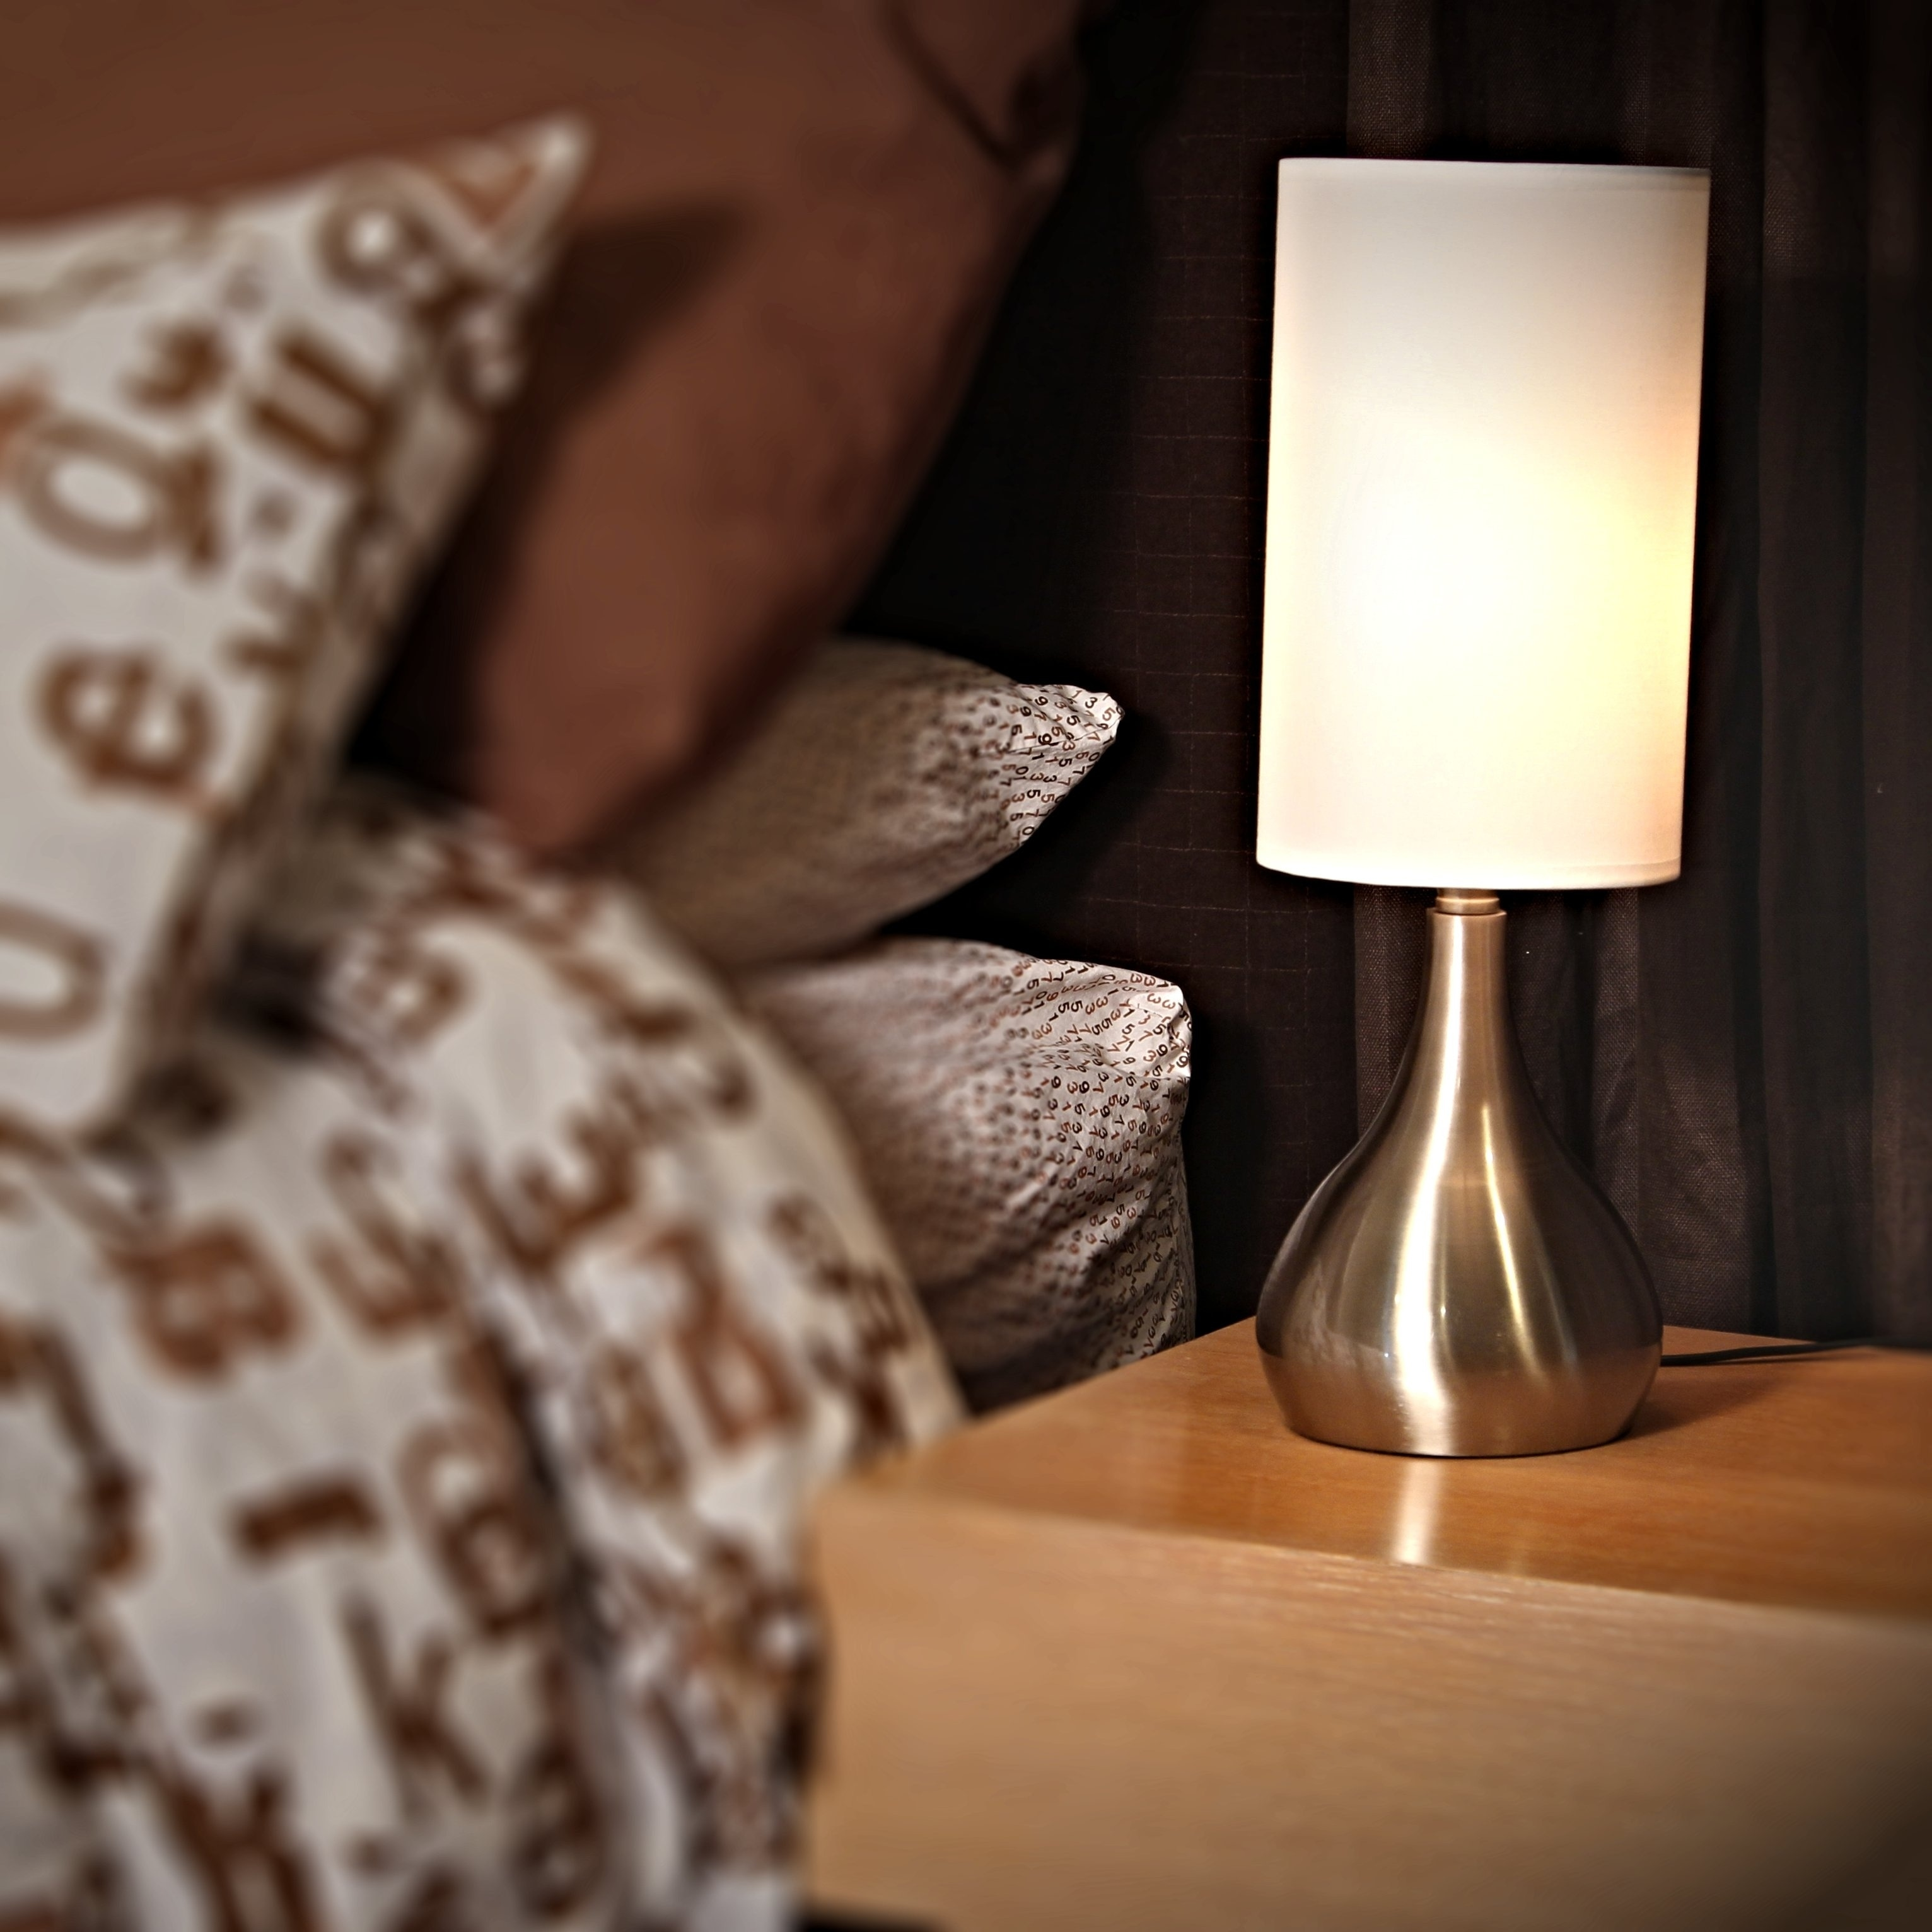 Decor Works Touch Table Lamp 18 Inches Tall Brushed Nickel With Fabric Shade